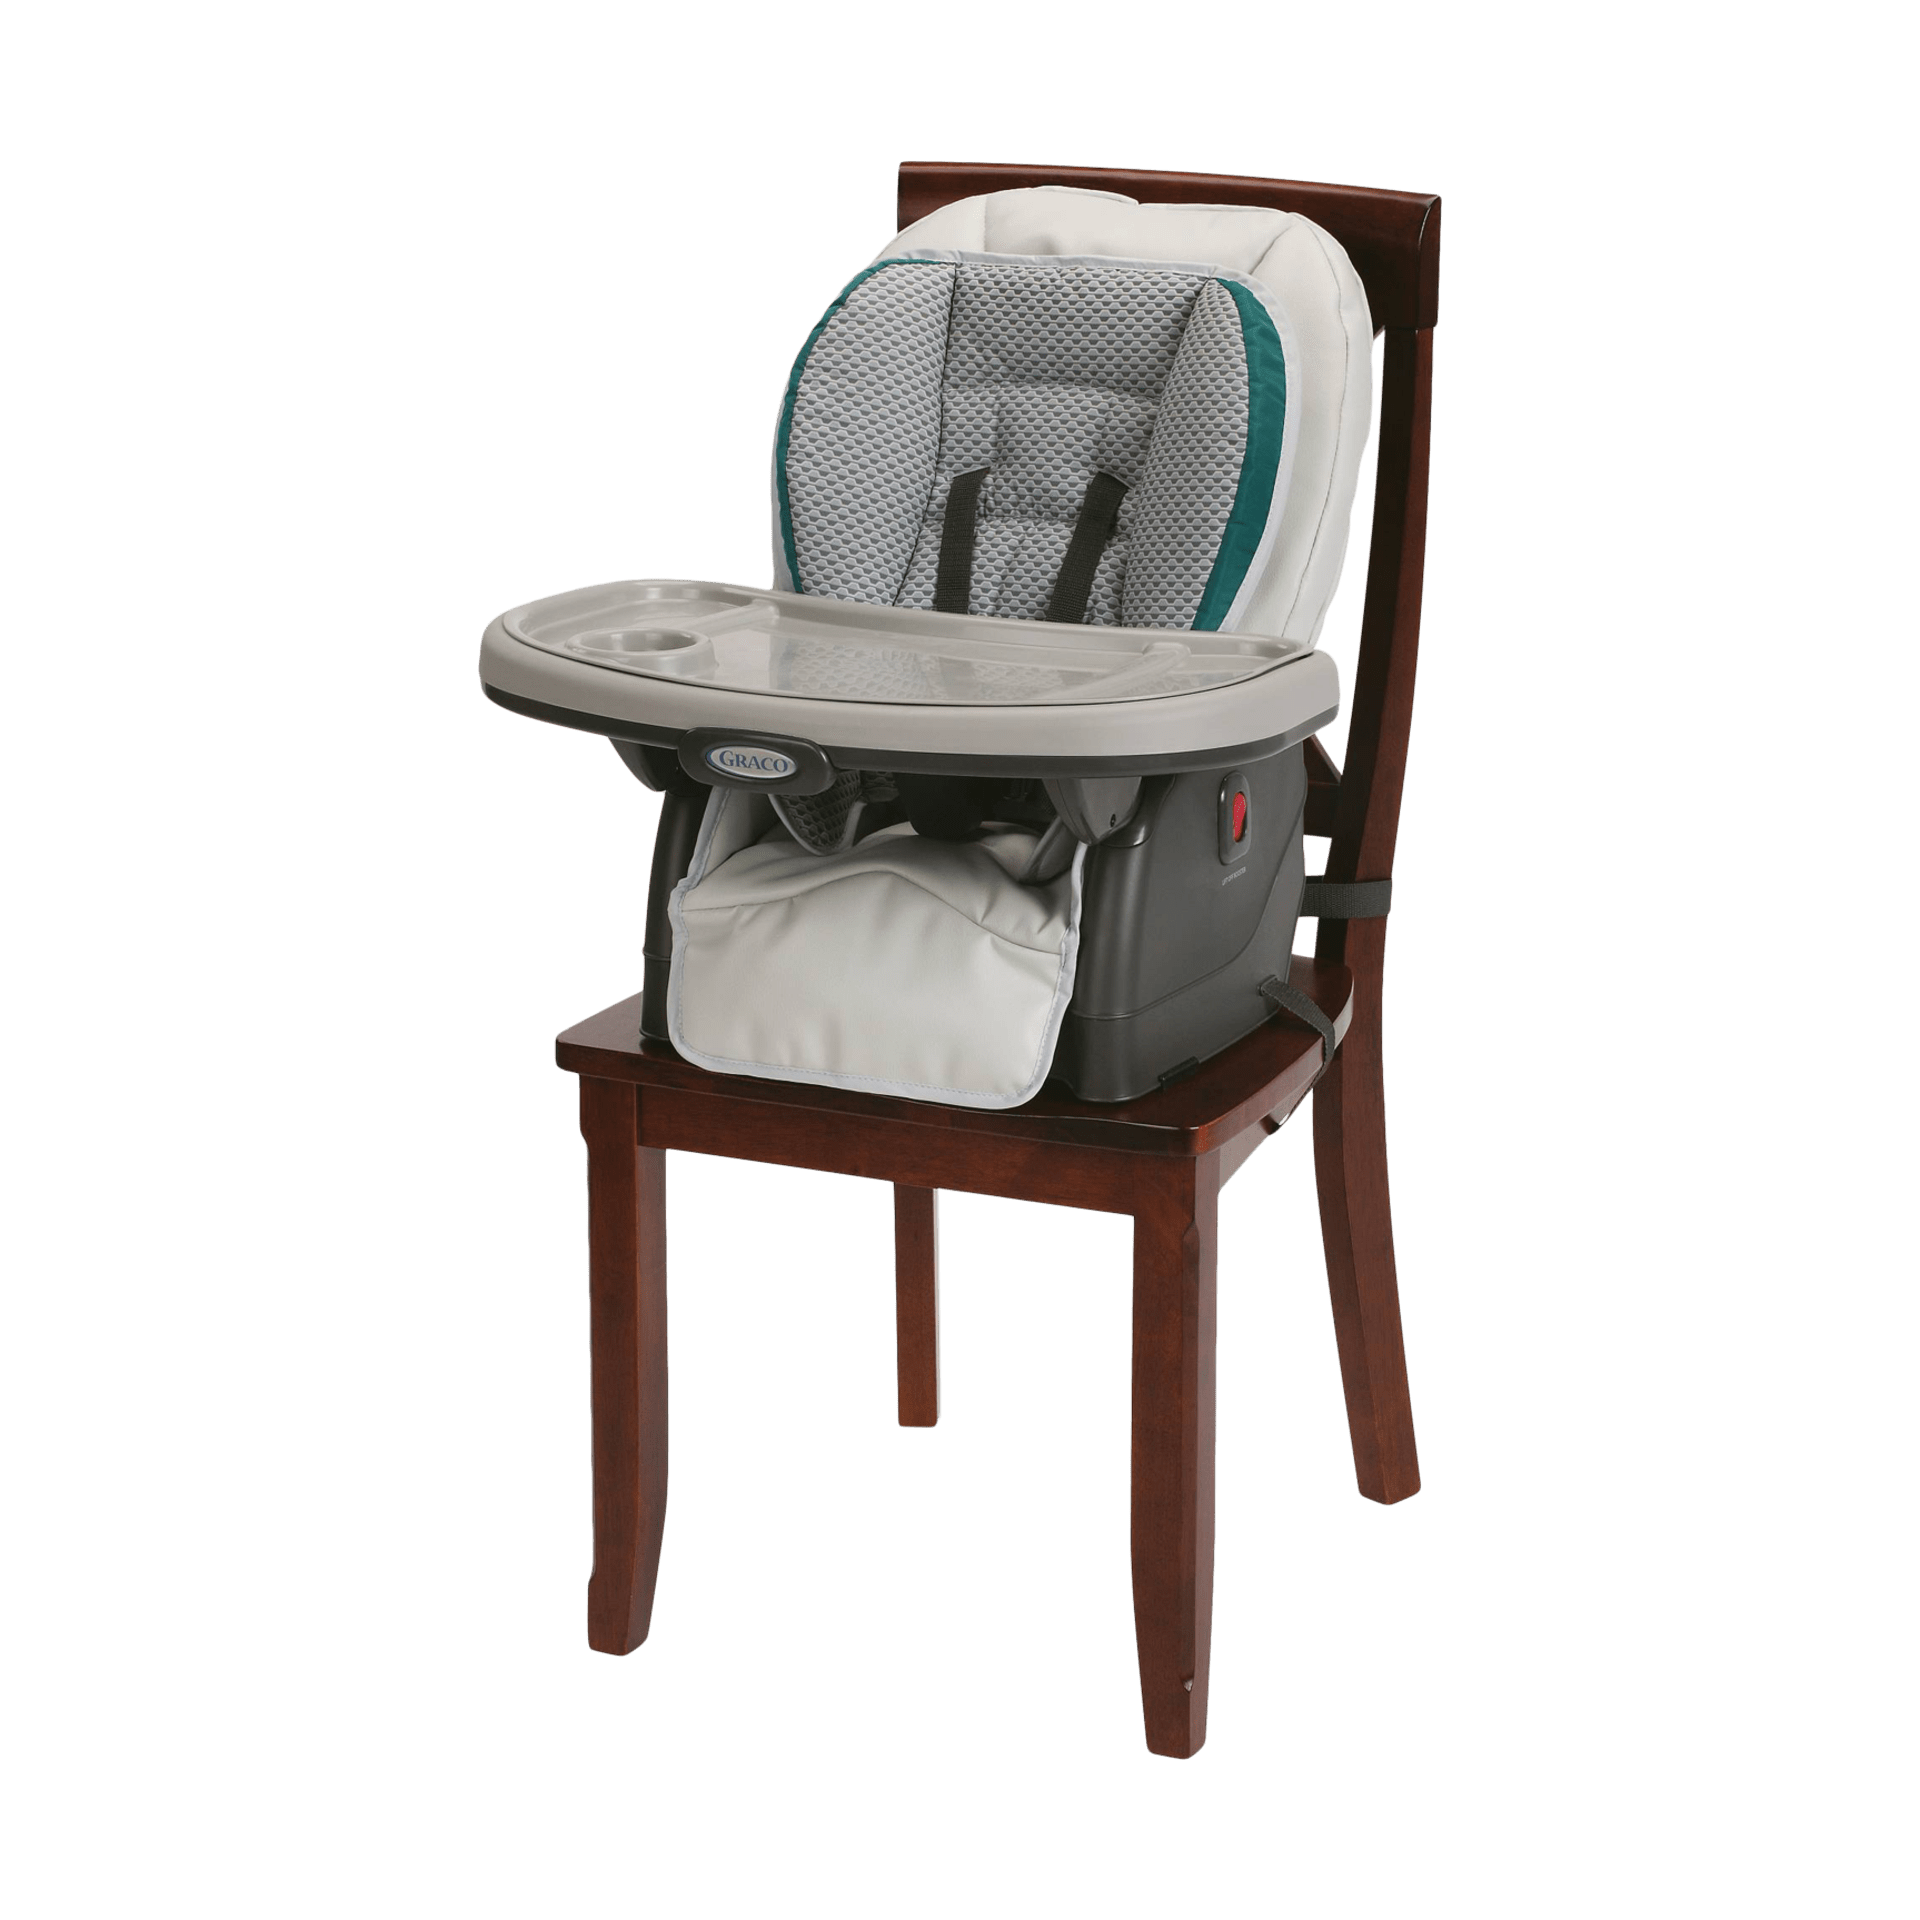 graco high chair 4 in 1 barber parts diagram babylist store